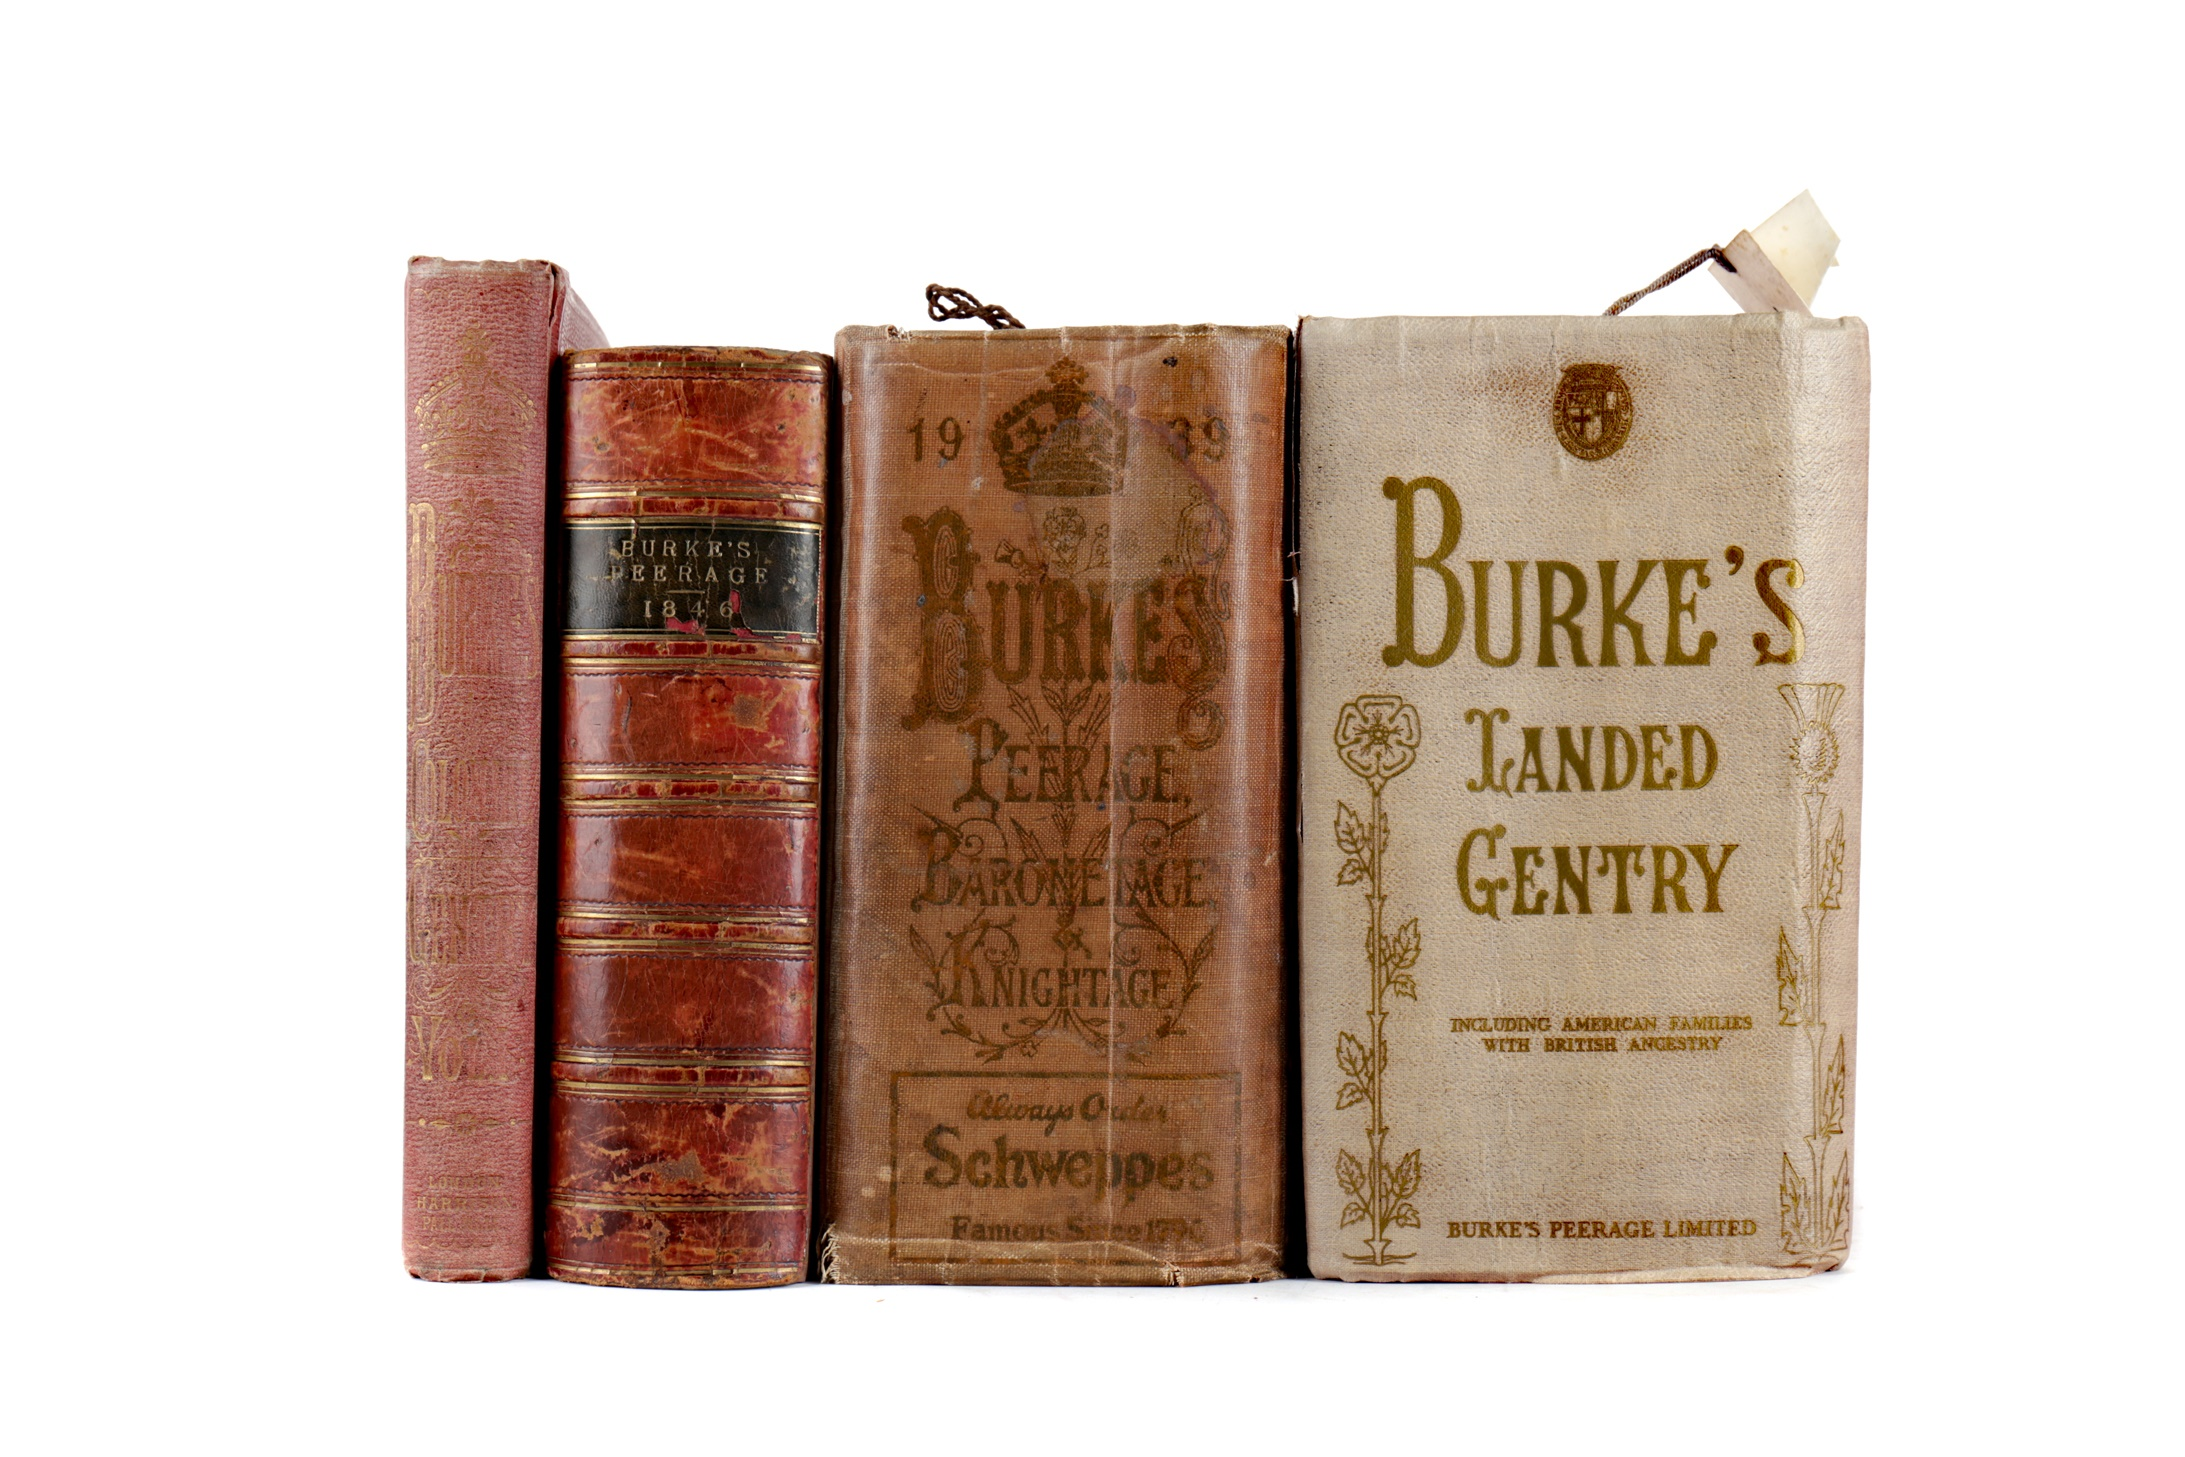 TWO VOLUMES BURKE'S PEERAGE AND TWO OTHER VOLUMES